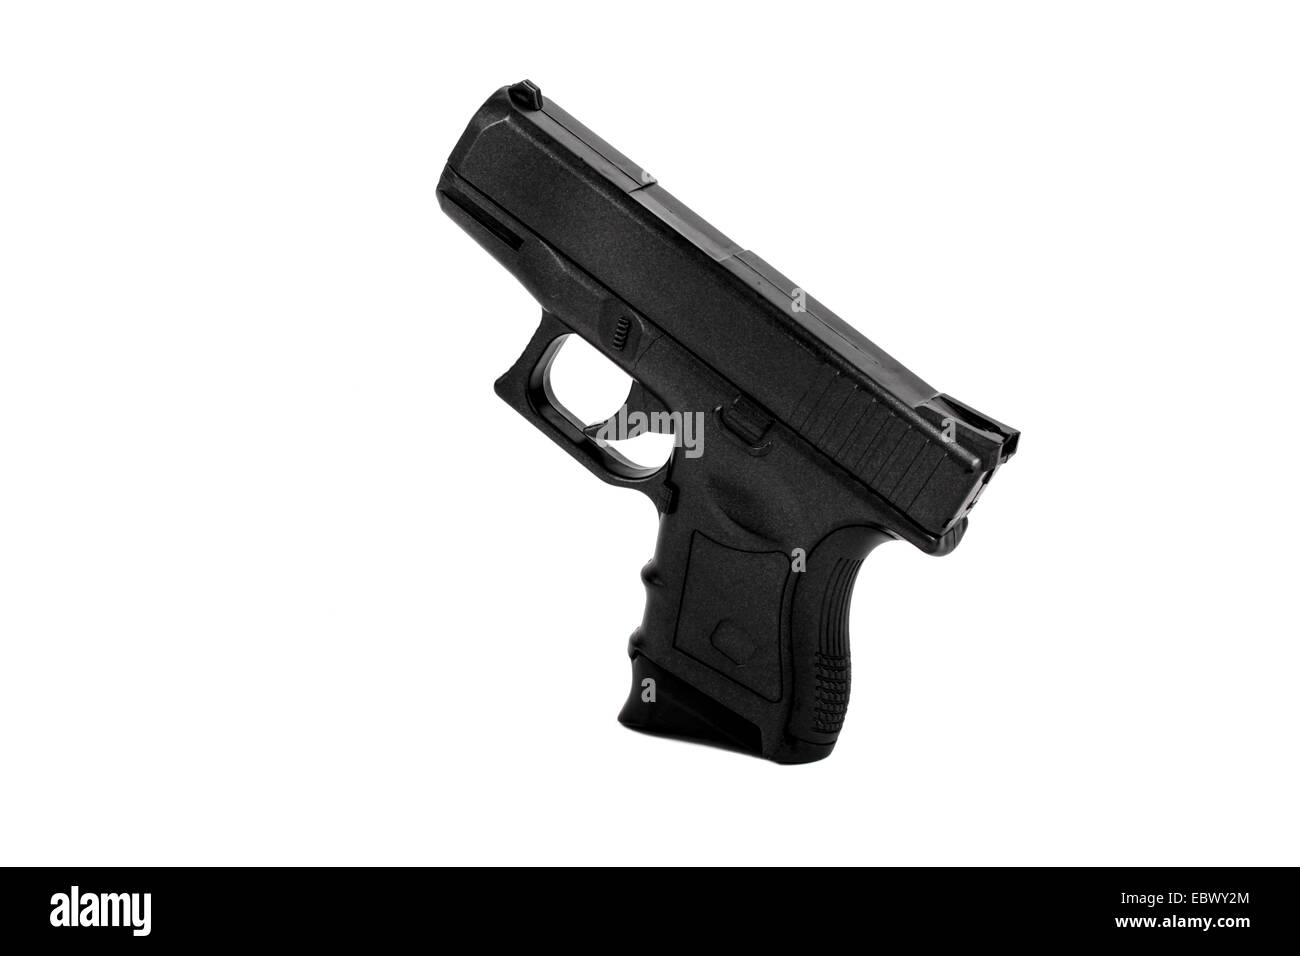 A semi-automatic hand gun on white background - Stock Image